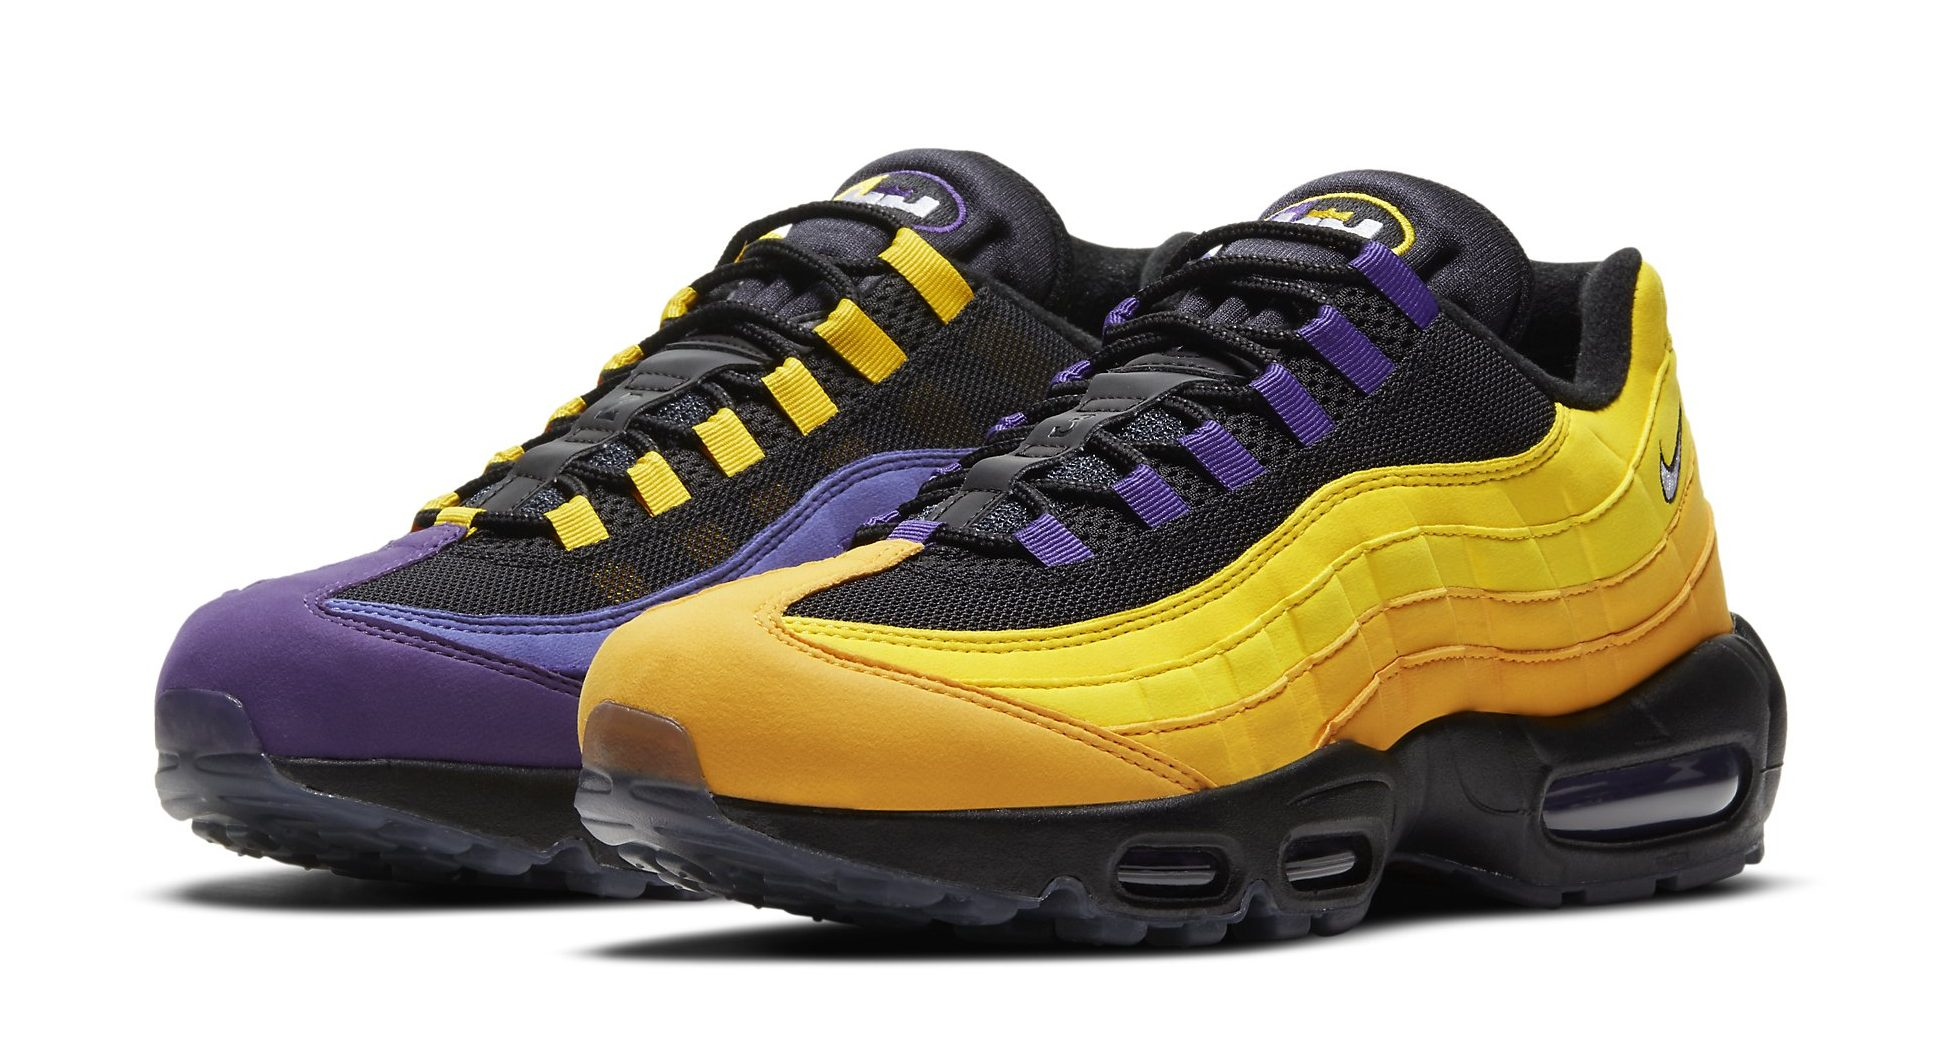 Nike Air Max 95 'LeBron James' Release Info: How to Buy a Pair ...